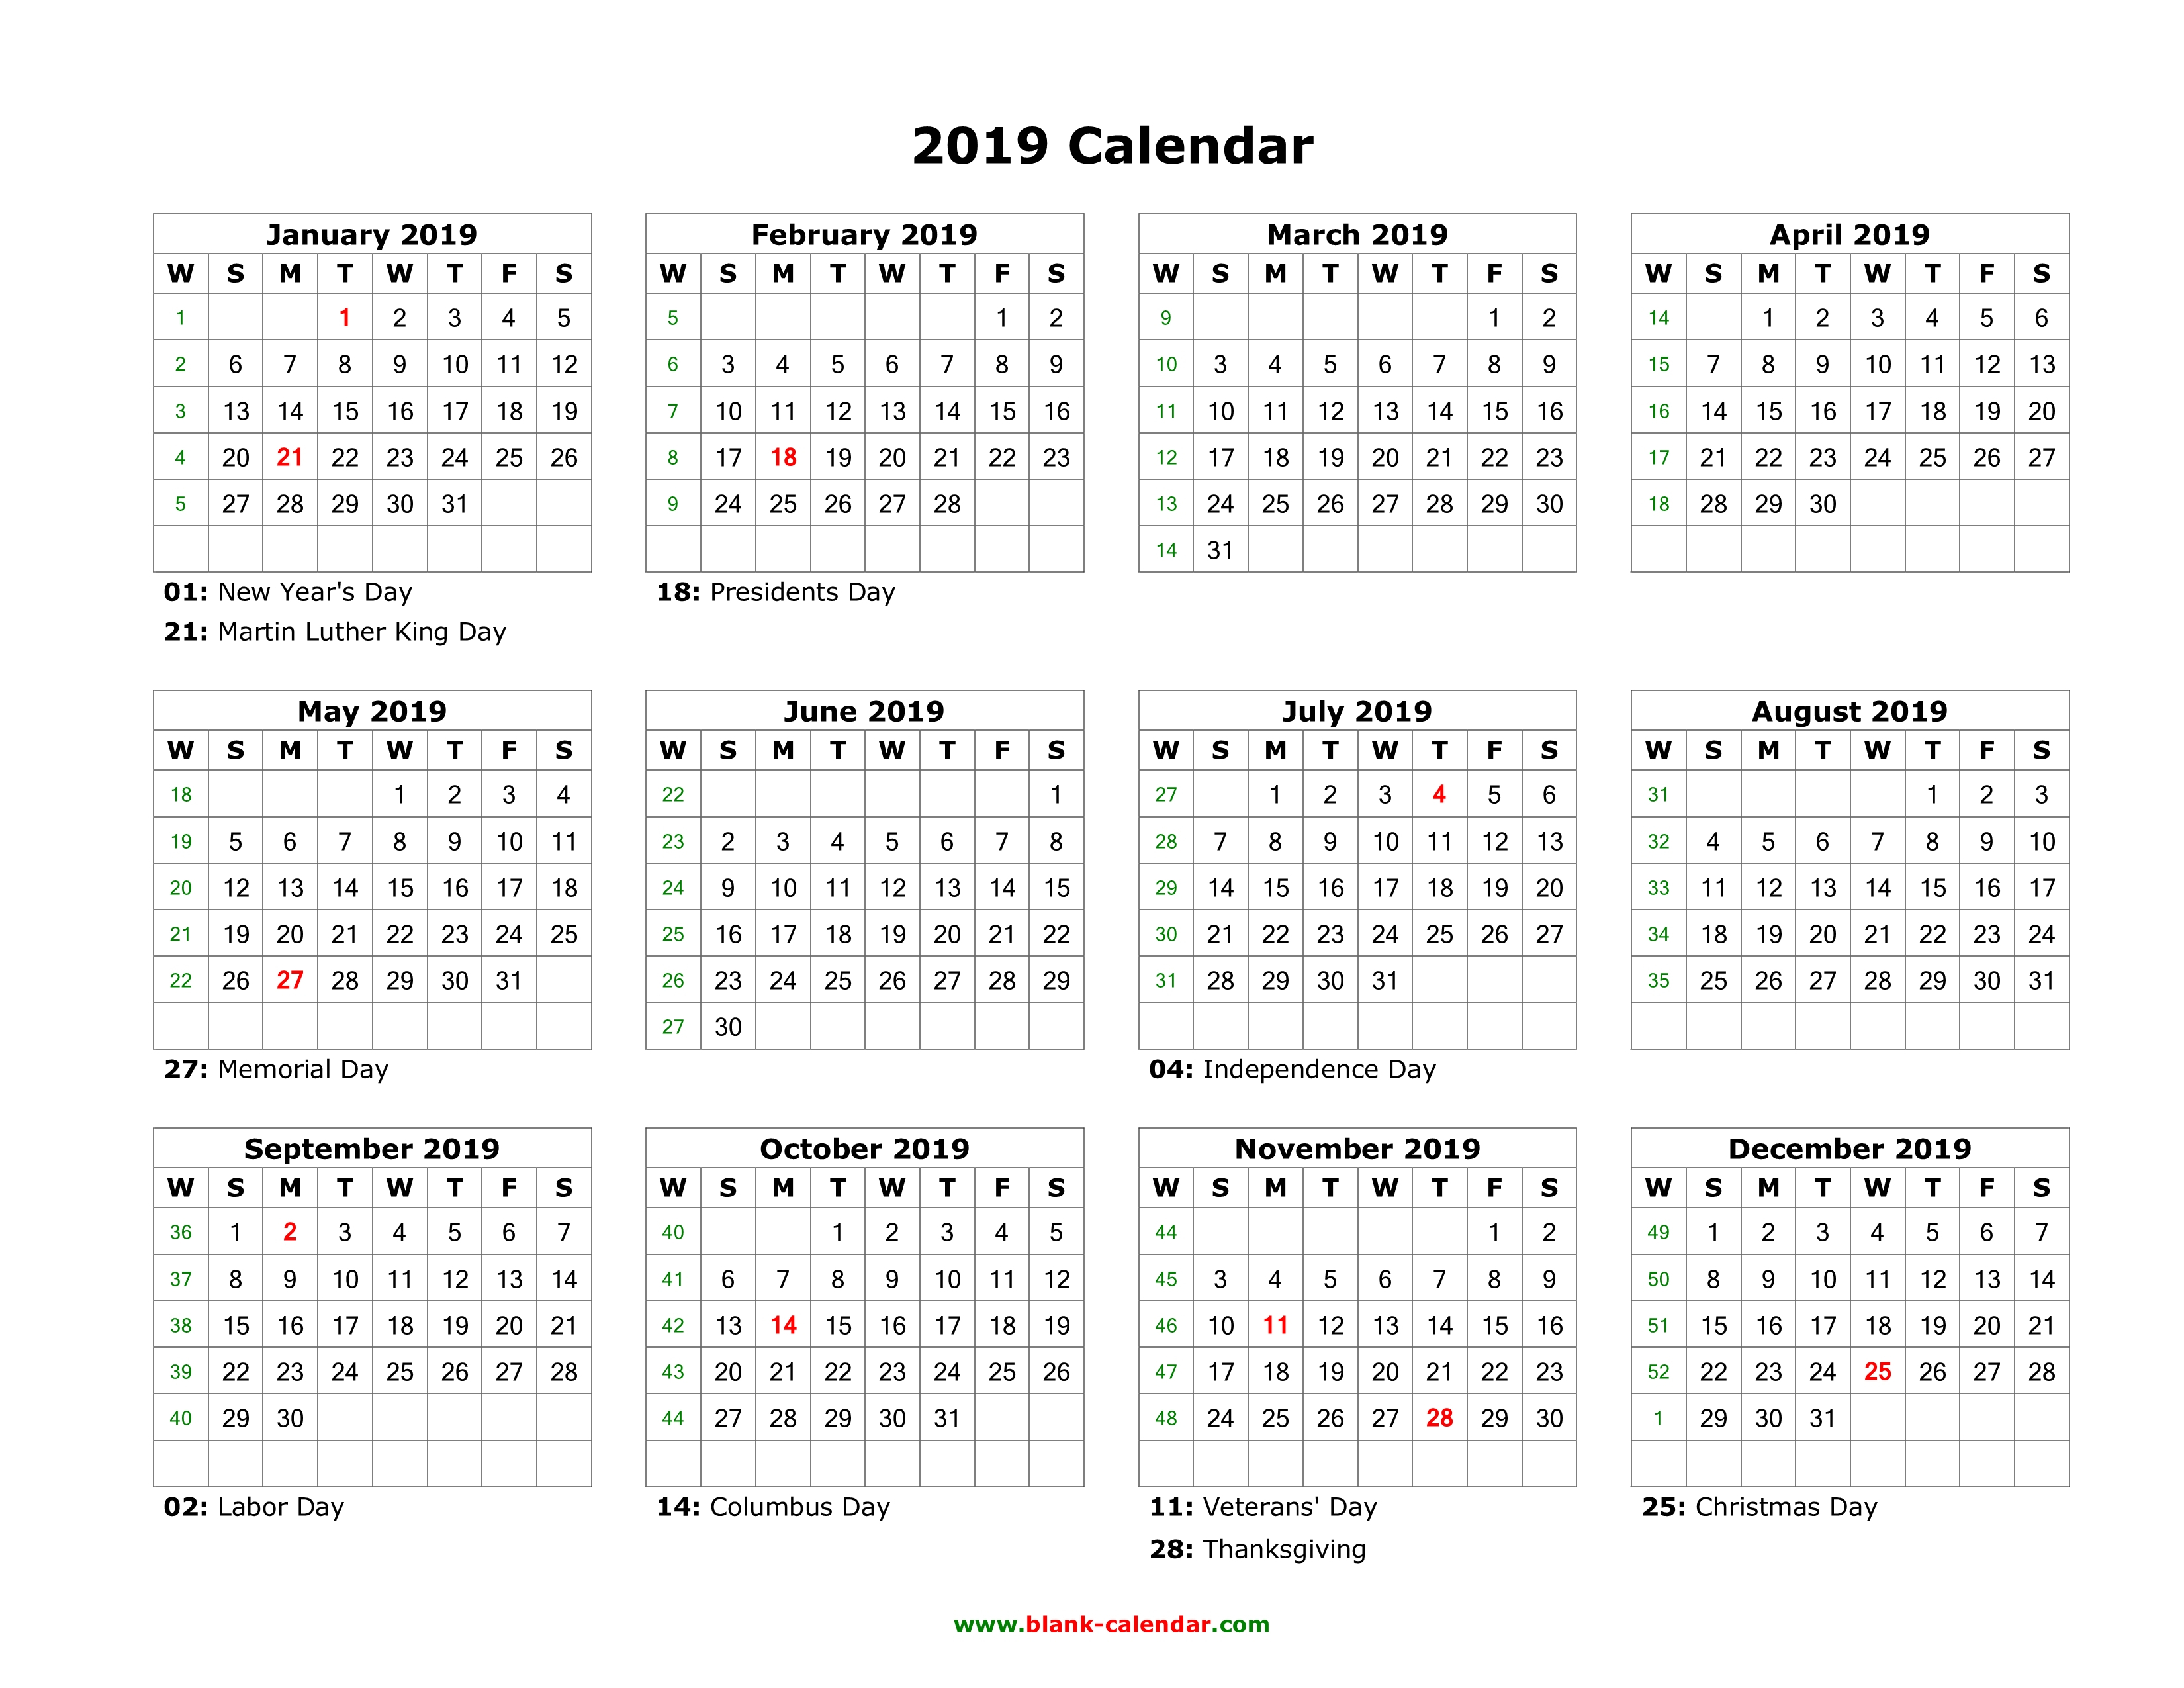 Blank Calendar 2019 | Free Download Calendar Templates